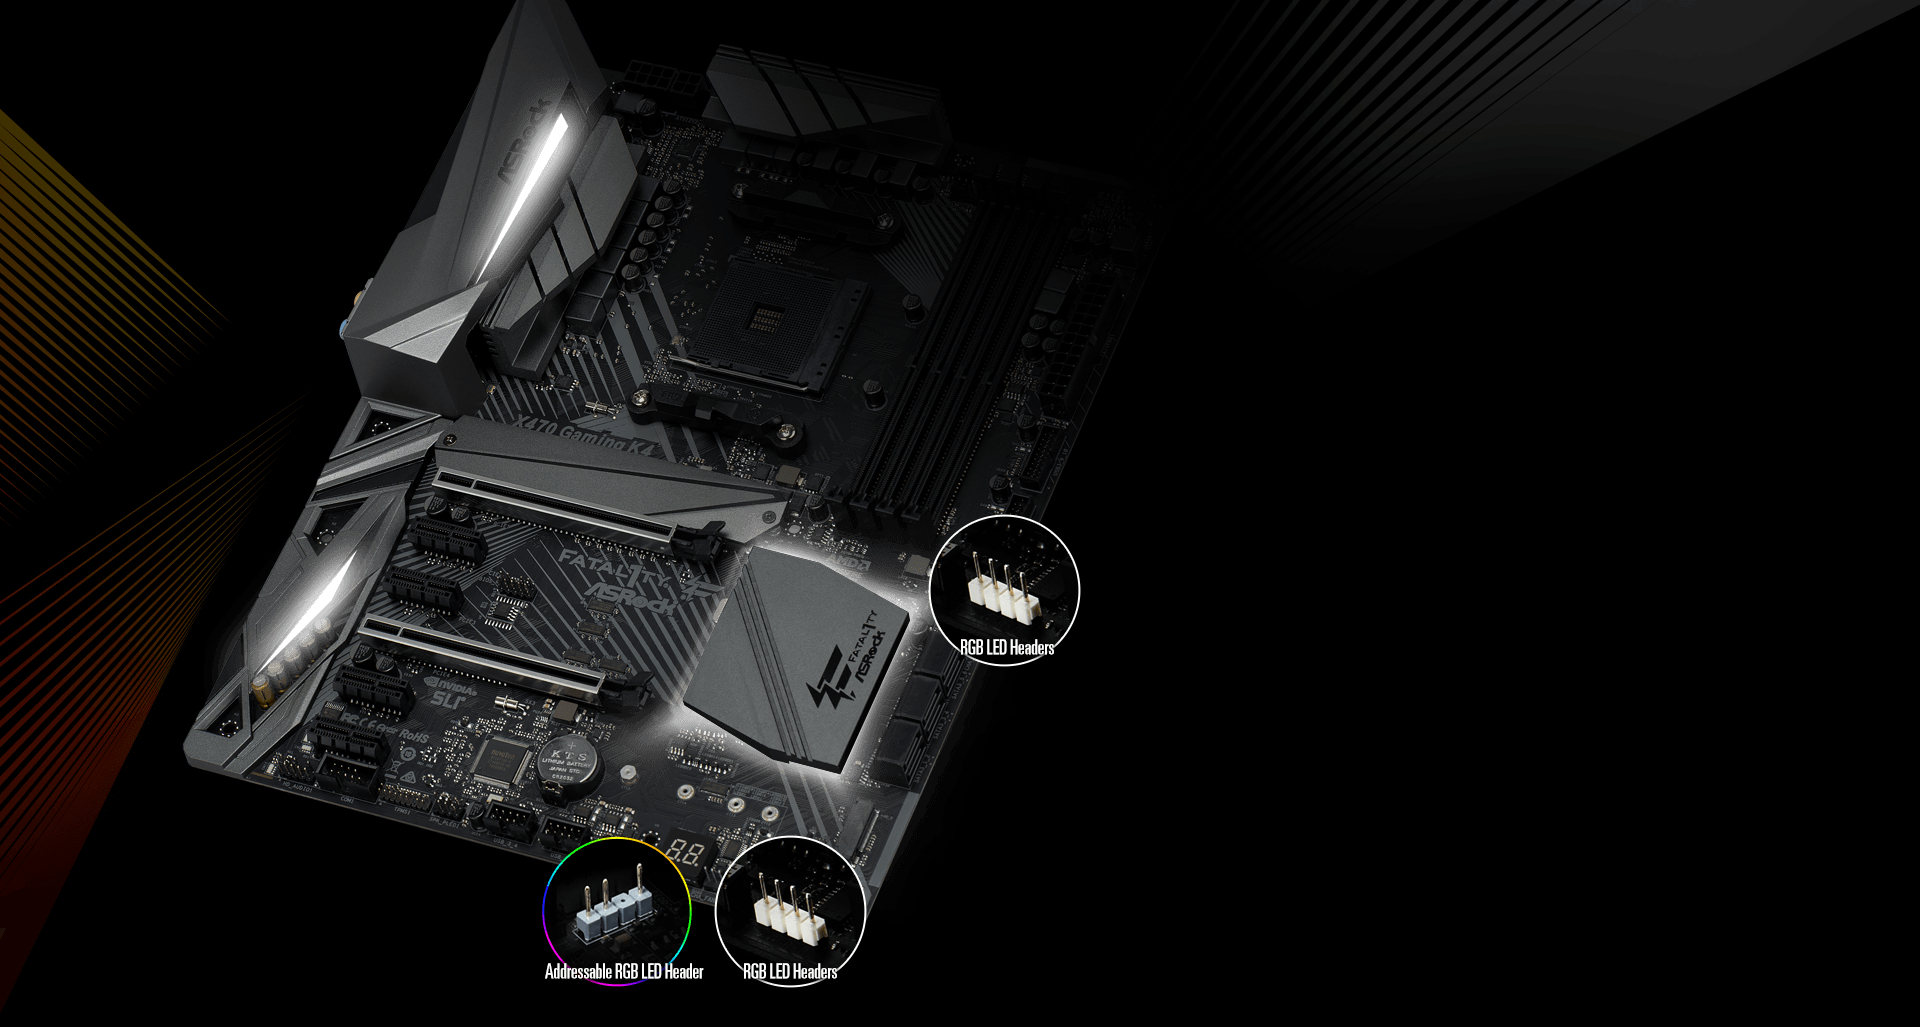 Asrock Fatal1ty X470 Gaming K4 12v Dual Usb Port Wiring Diagram The Rgb Led Header Supports Standard 5050 Strip G R B With A Maximum Power Rating Of 3a And Length Within 2 Meters